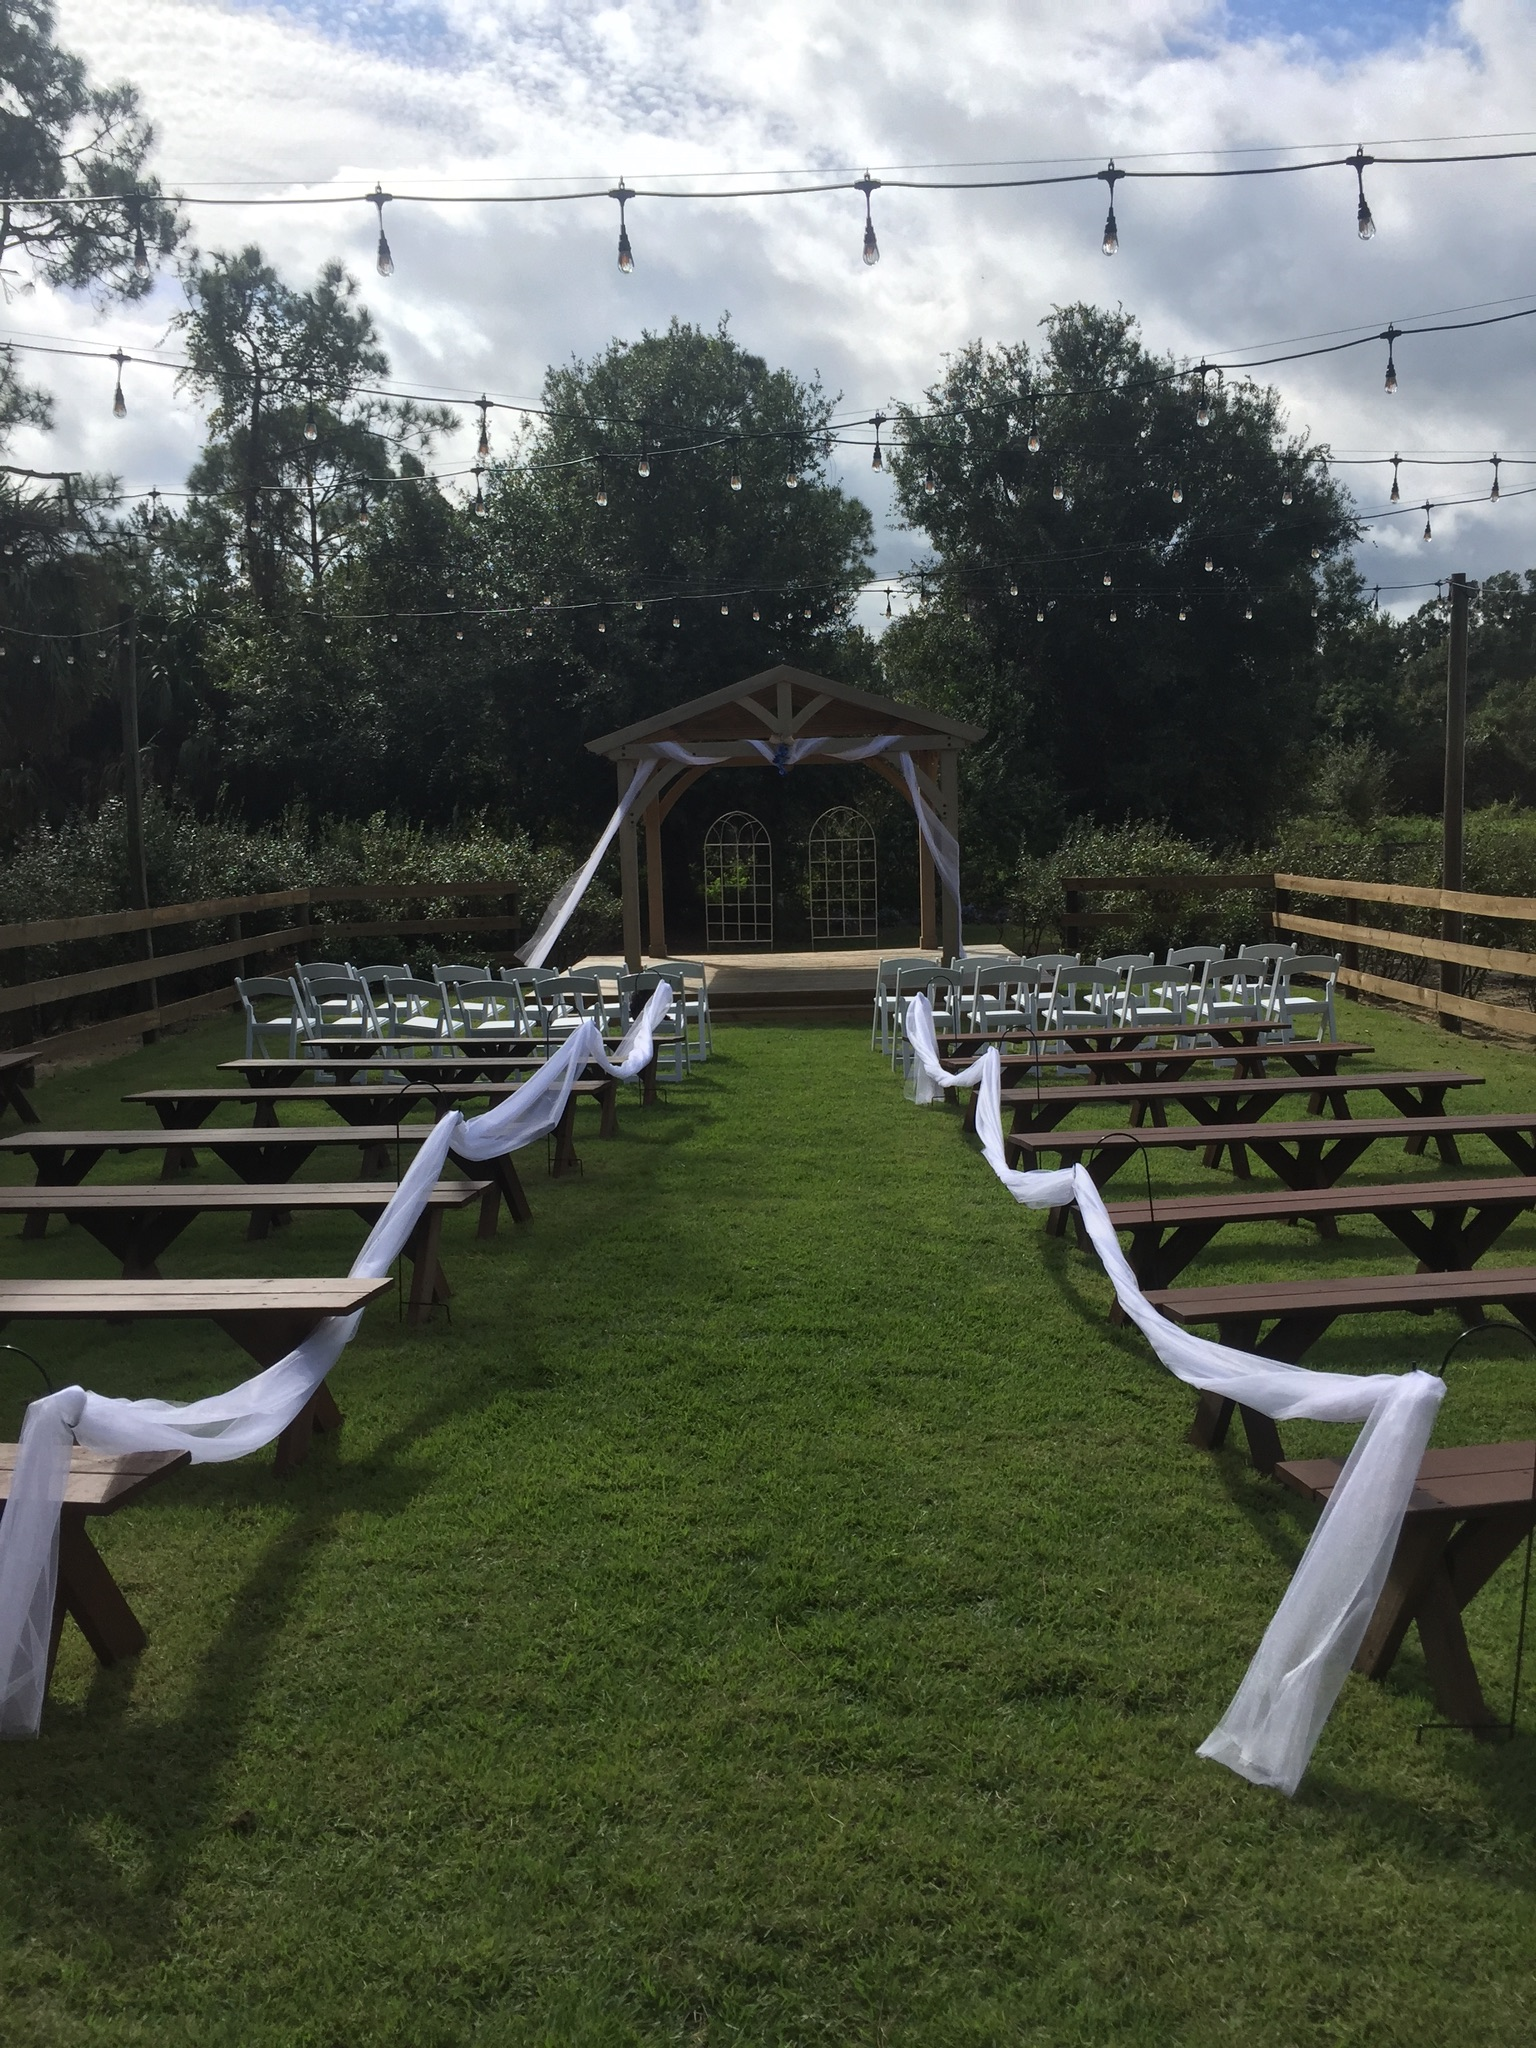 Blue View Barn - outdoor wedding ceremony overlooking blueberry bushes